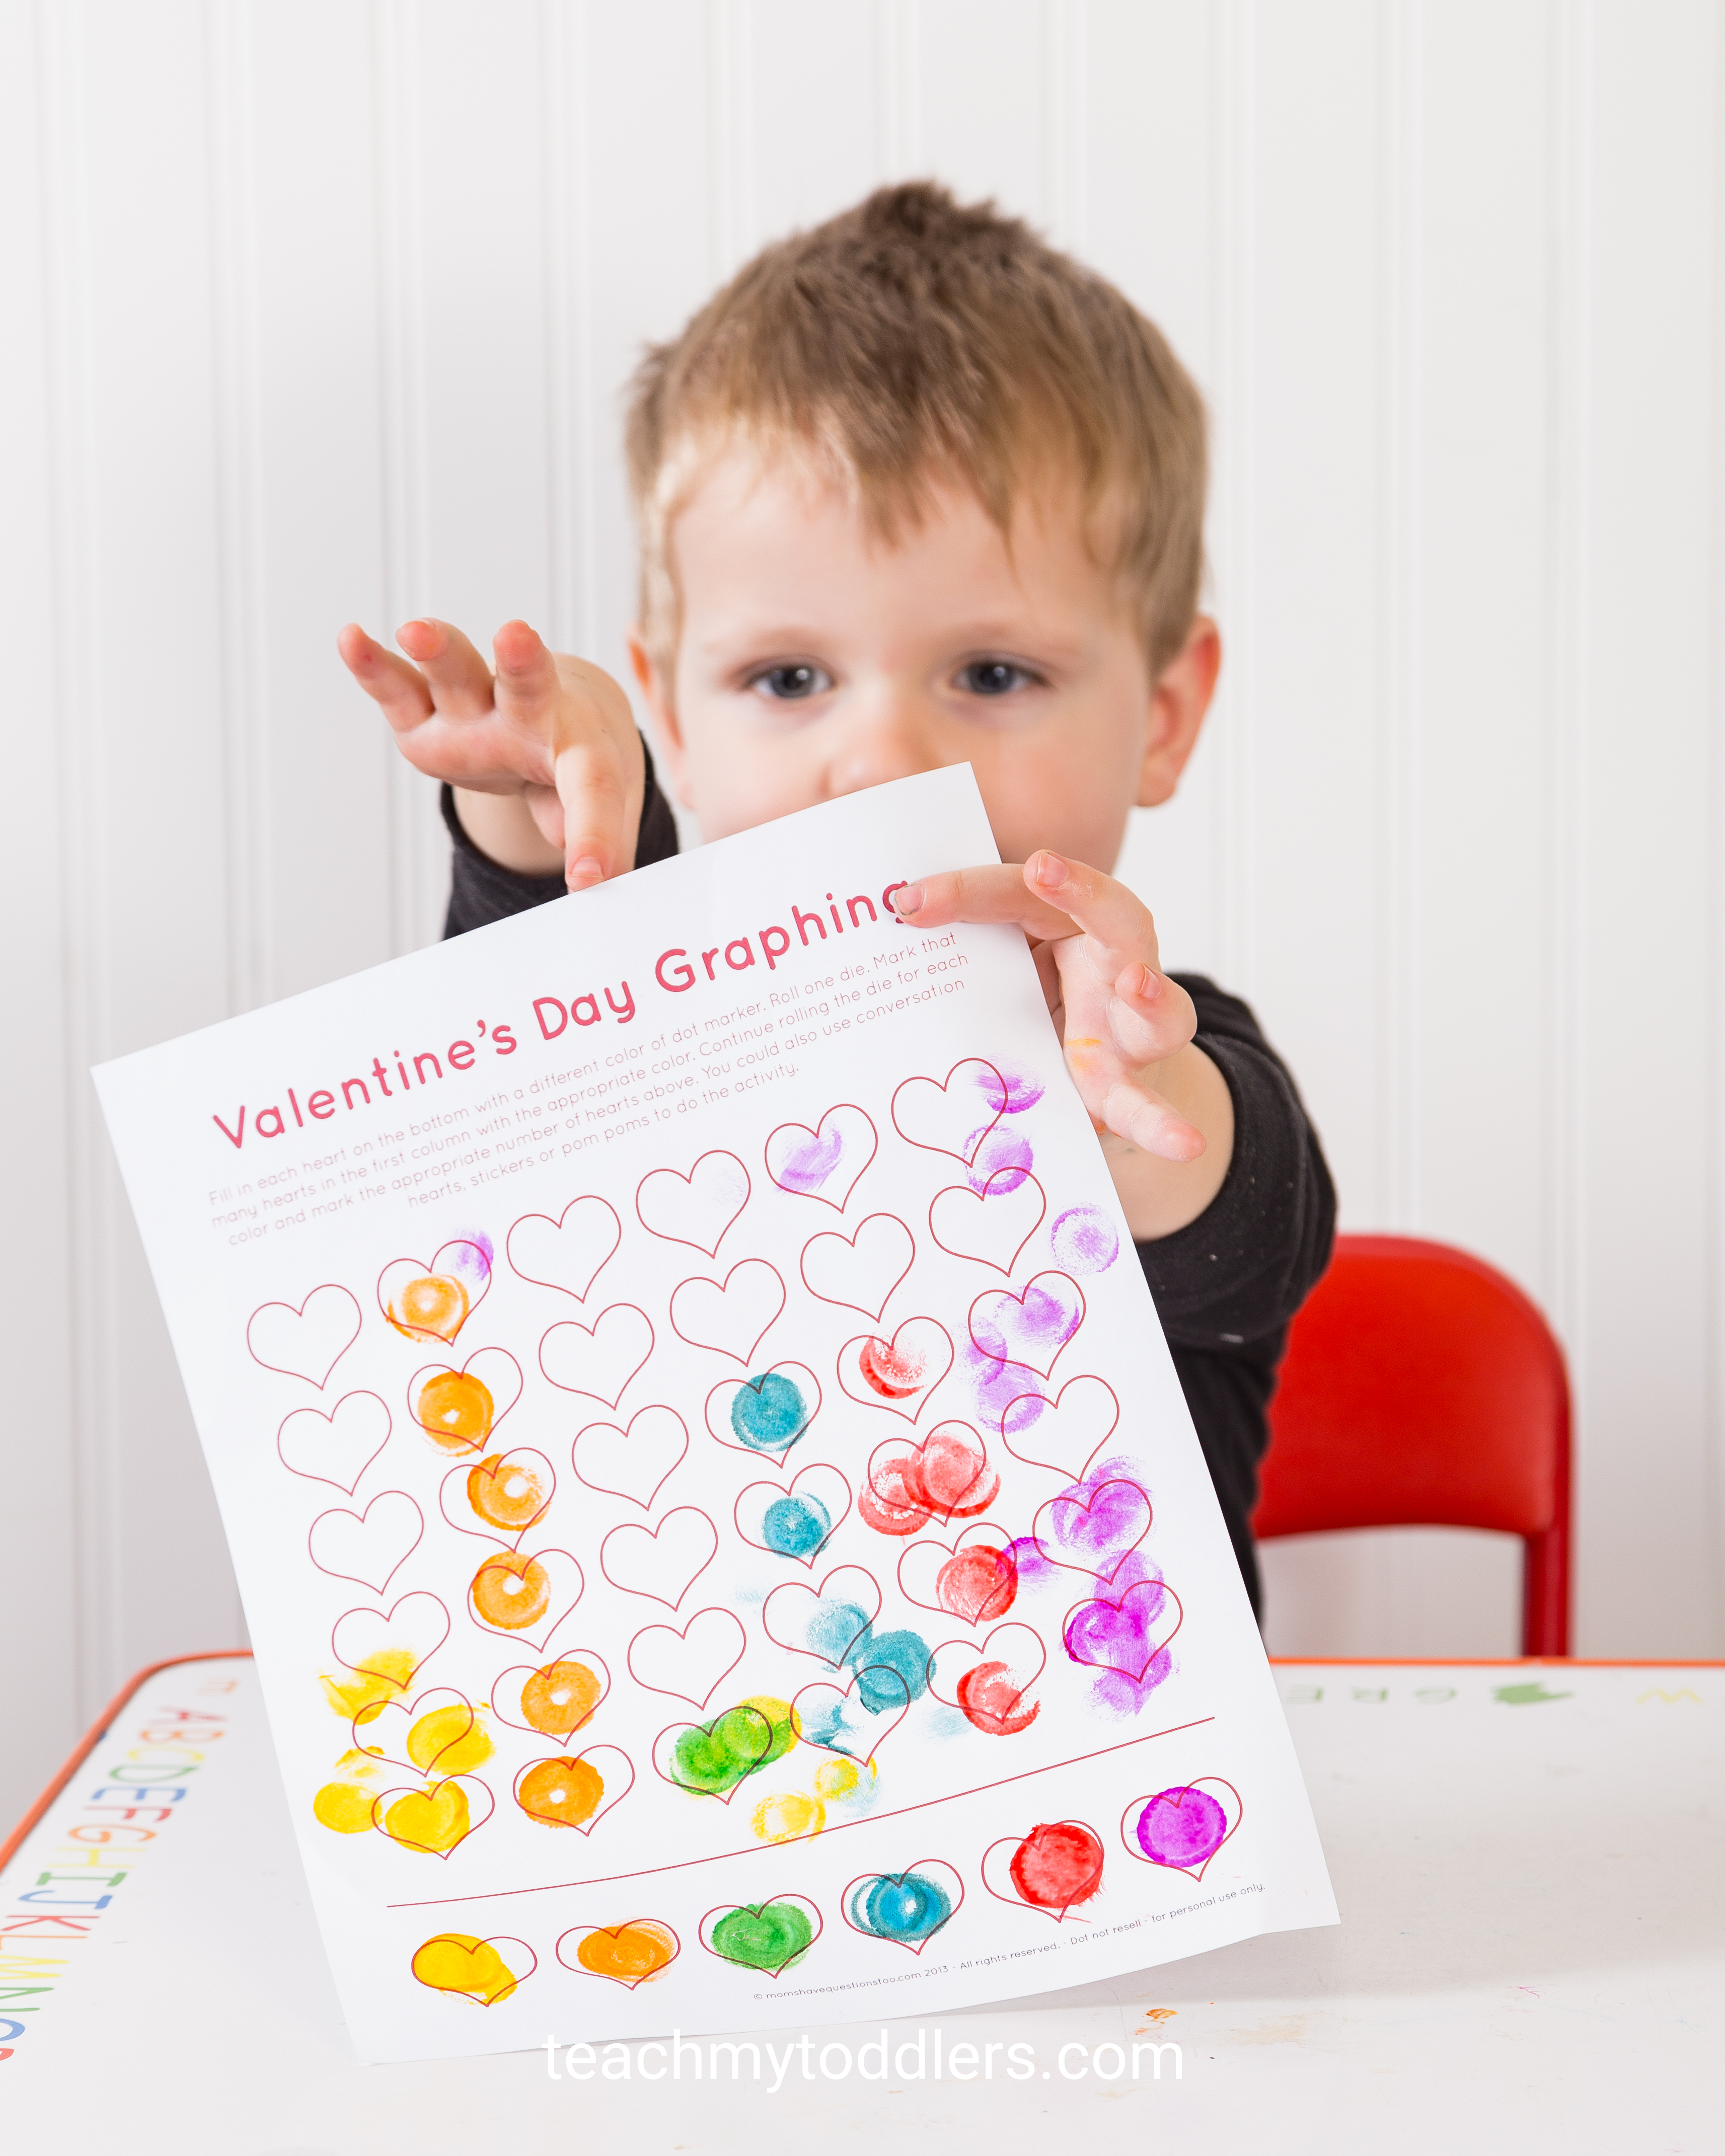 Learn how to use this valentine's day graph to teach your toddlers math skills